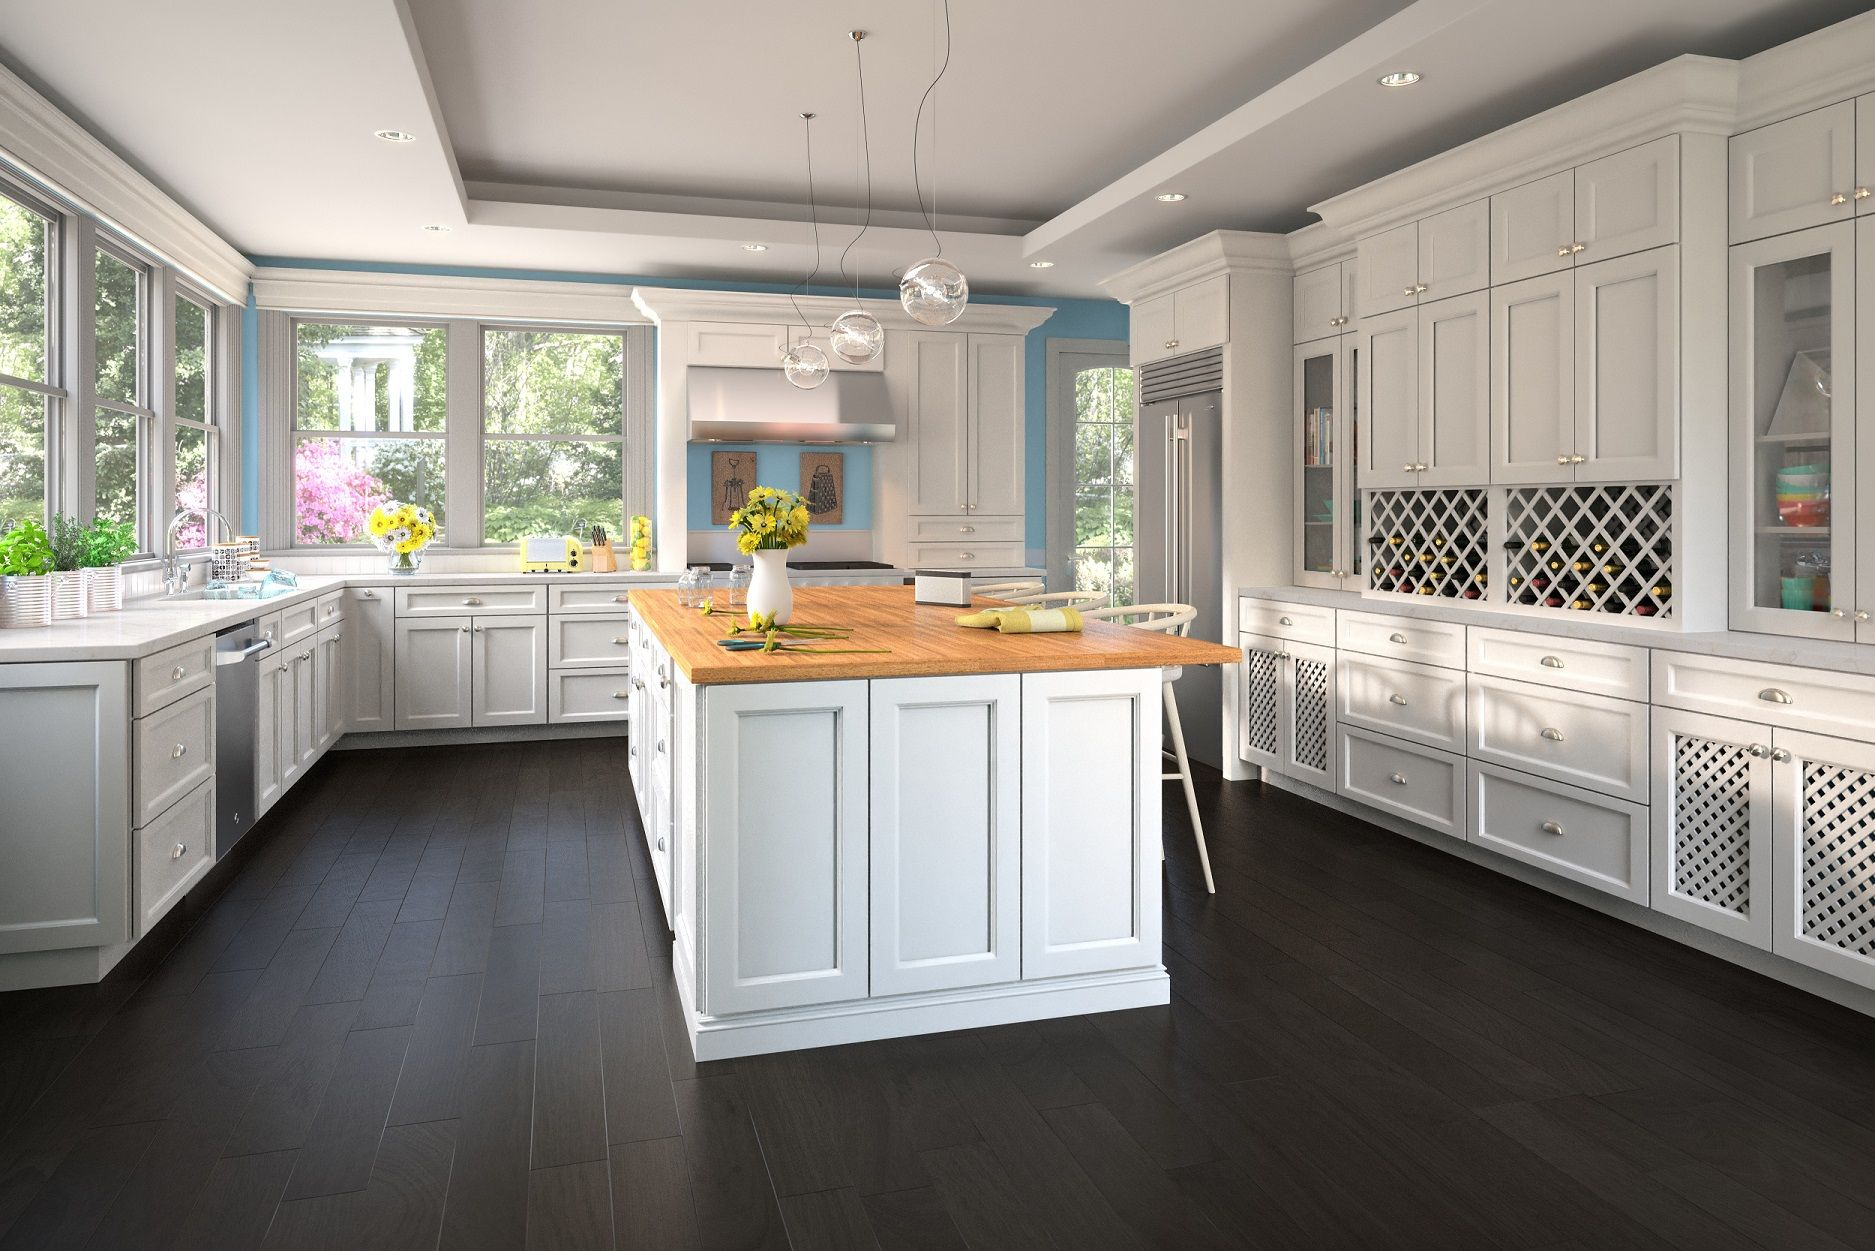 The rta cabinet store - 1000 Images About Rta Kitchen Cabinets On Pinterest Espresso